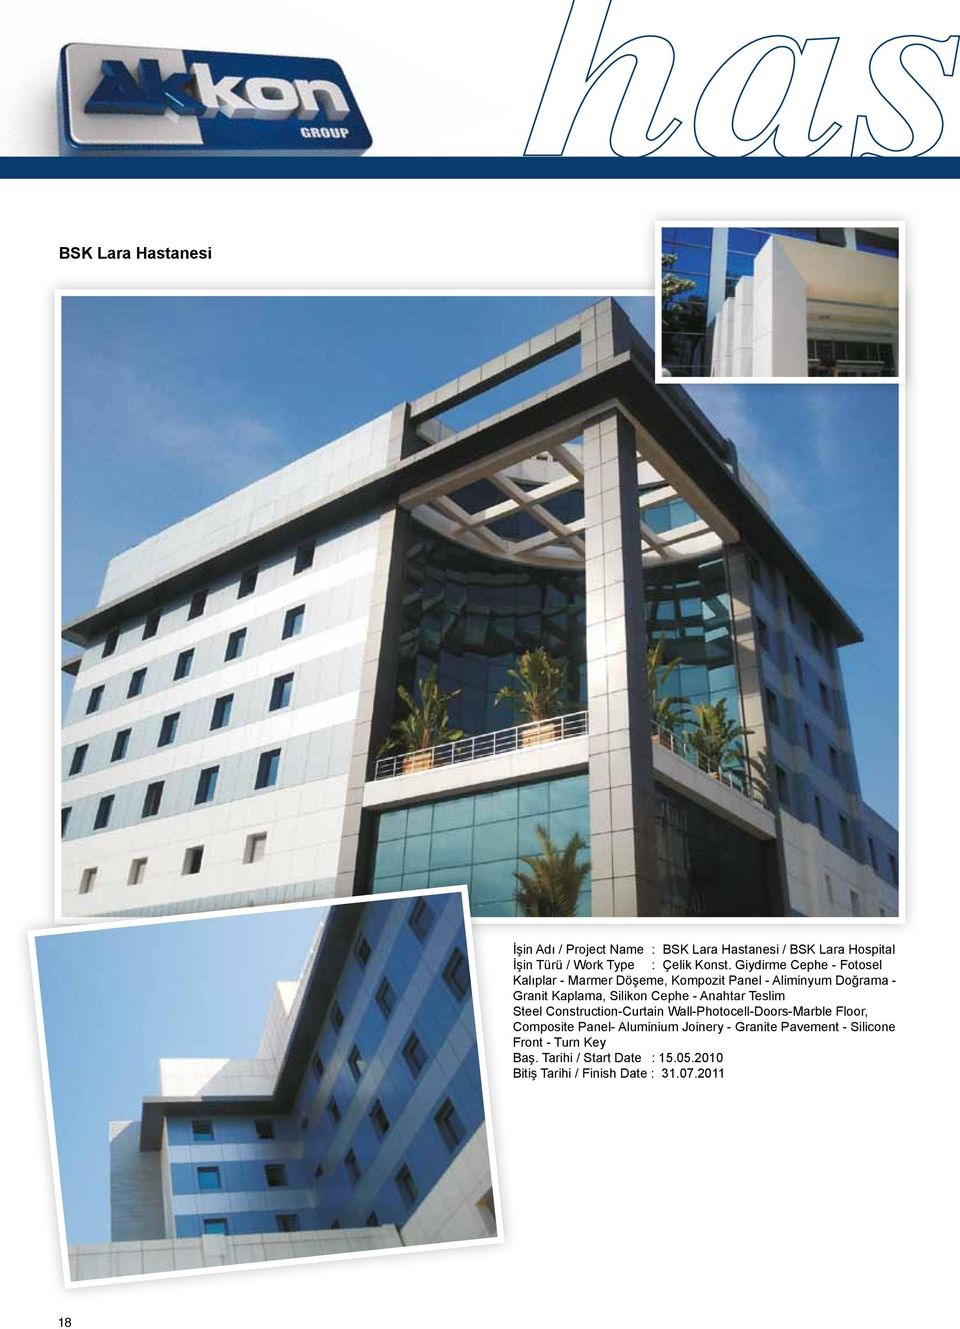 Anahtar Teslim Steel Construction-Curtain Wall-Photocell-Doors-Marble Floor, Composite Panel- Aluminium Joinery -